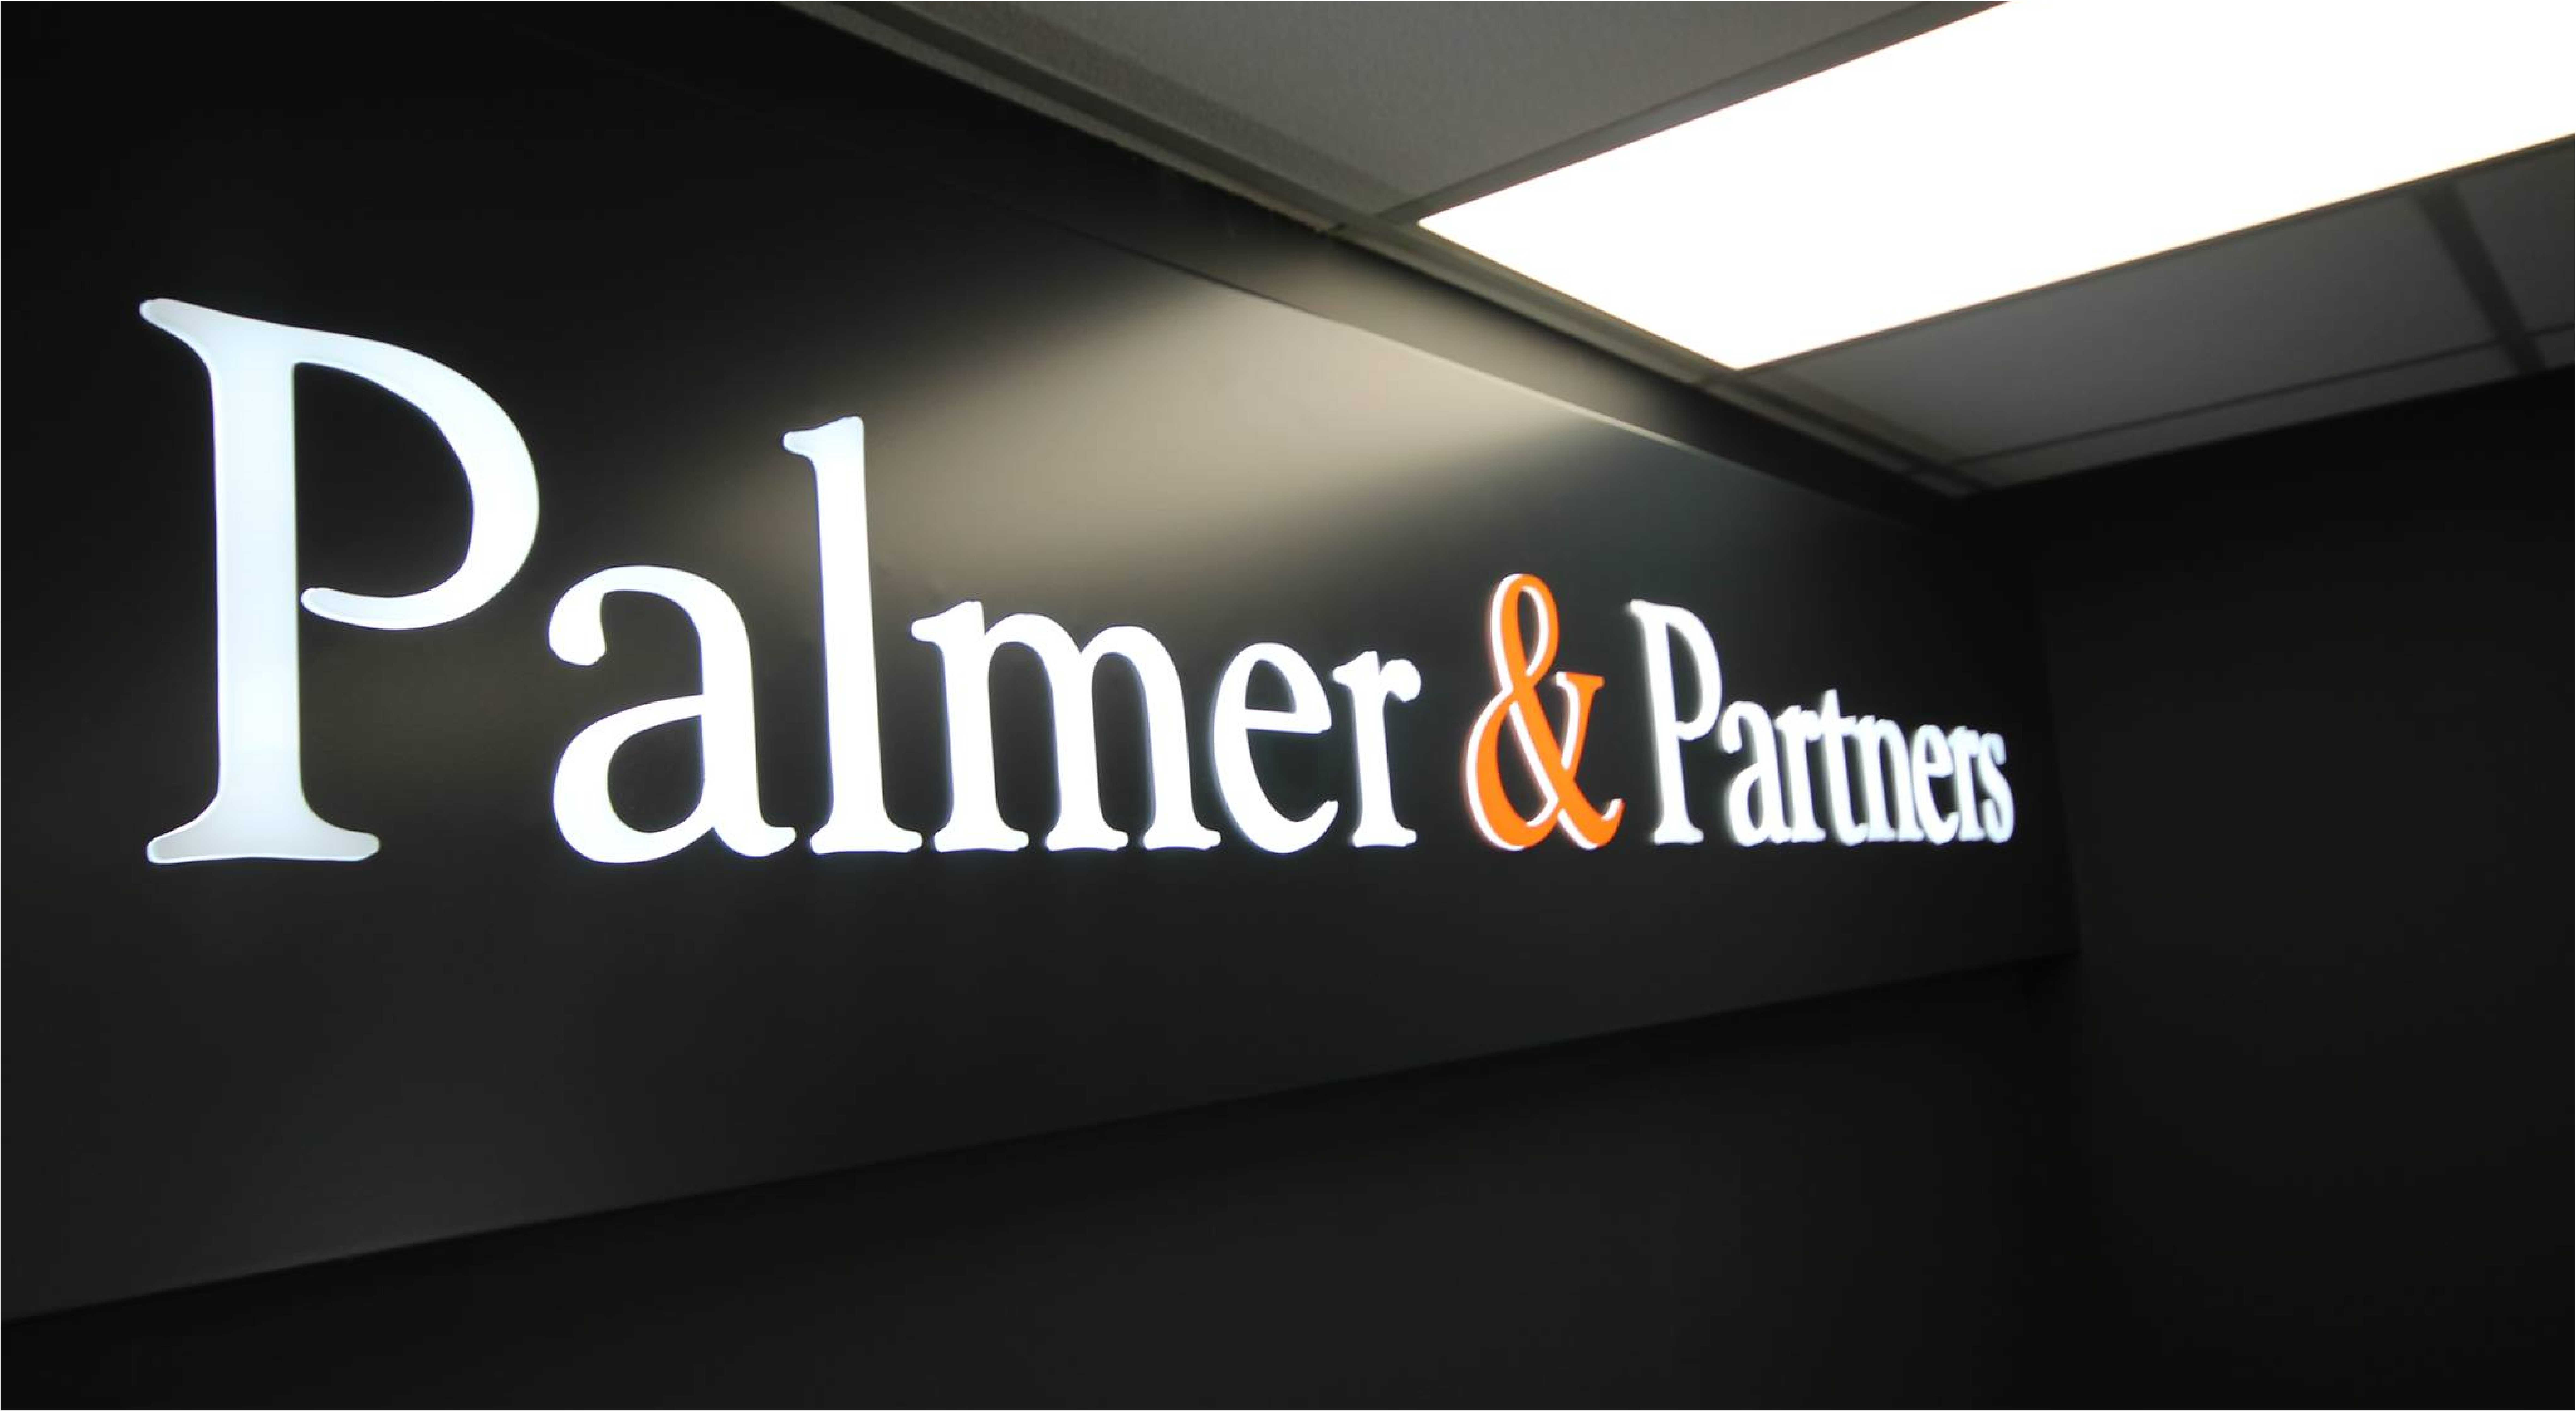 Palmer & Partners Signage - Sign Printing and Installation by Envirosigns Ltd